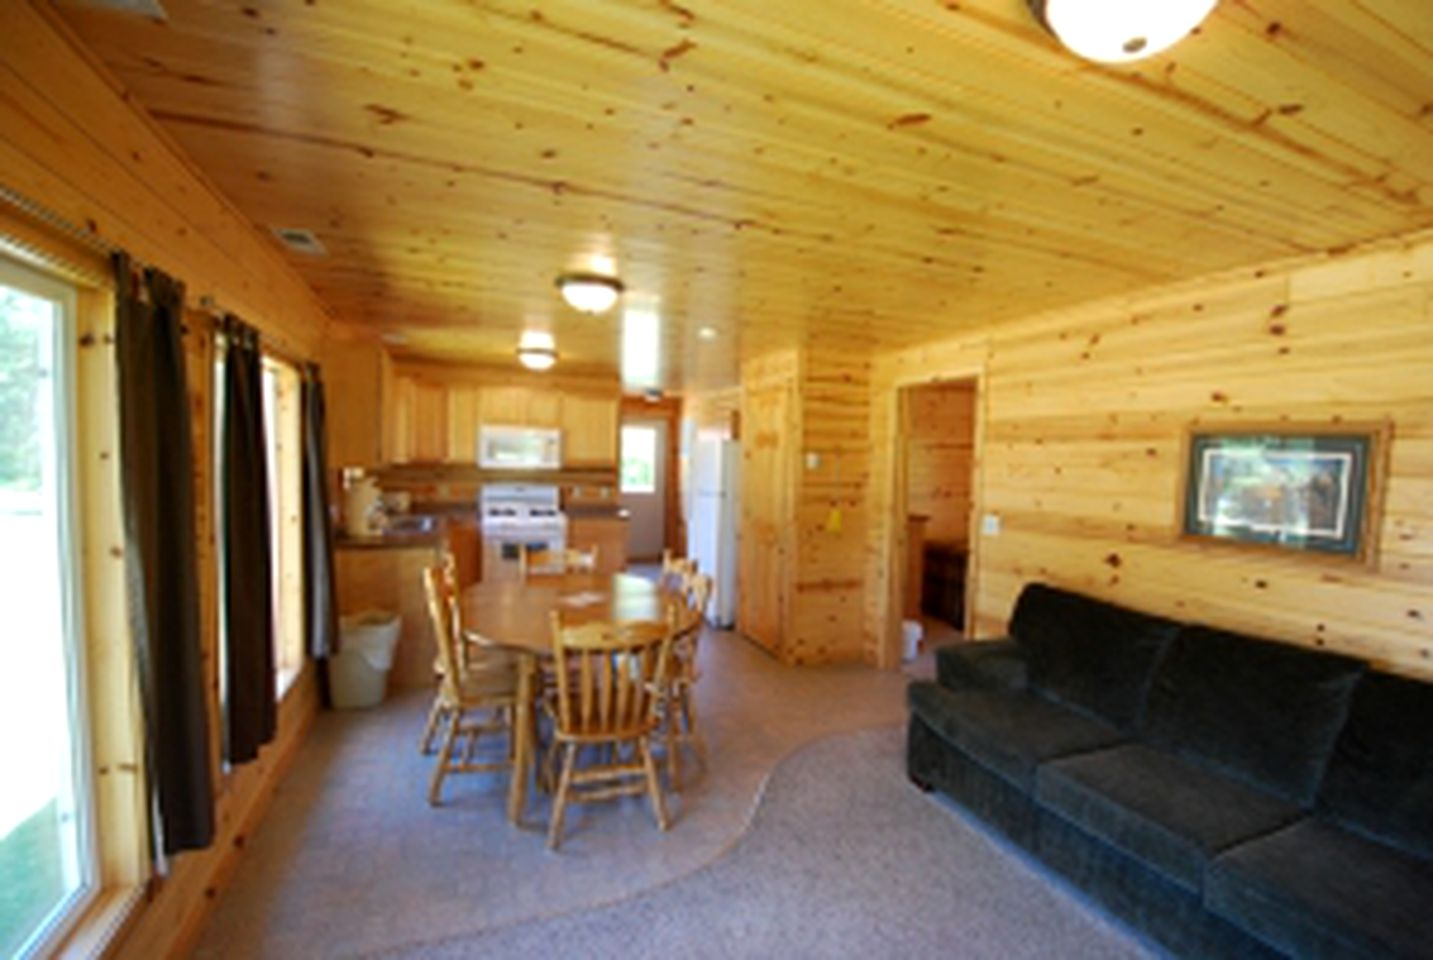 Pelican Lake cabin rental (Orr, Minnesota, United States)